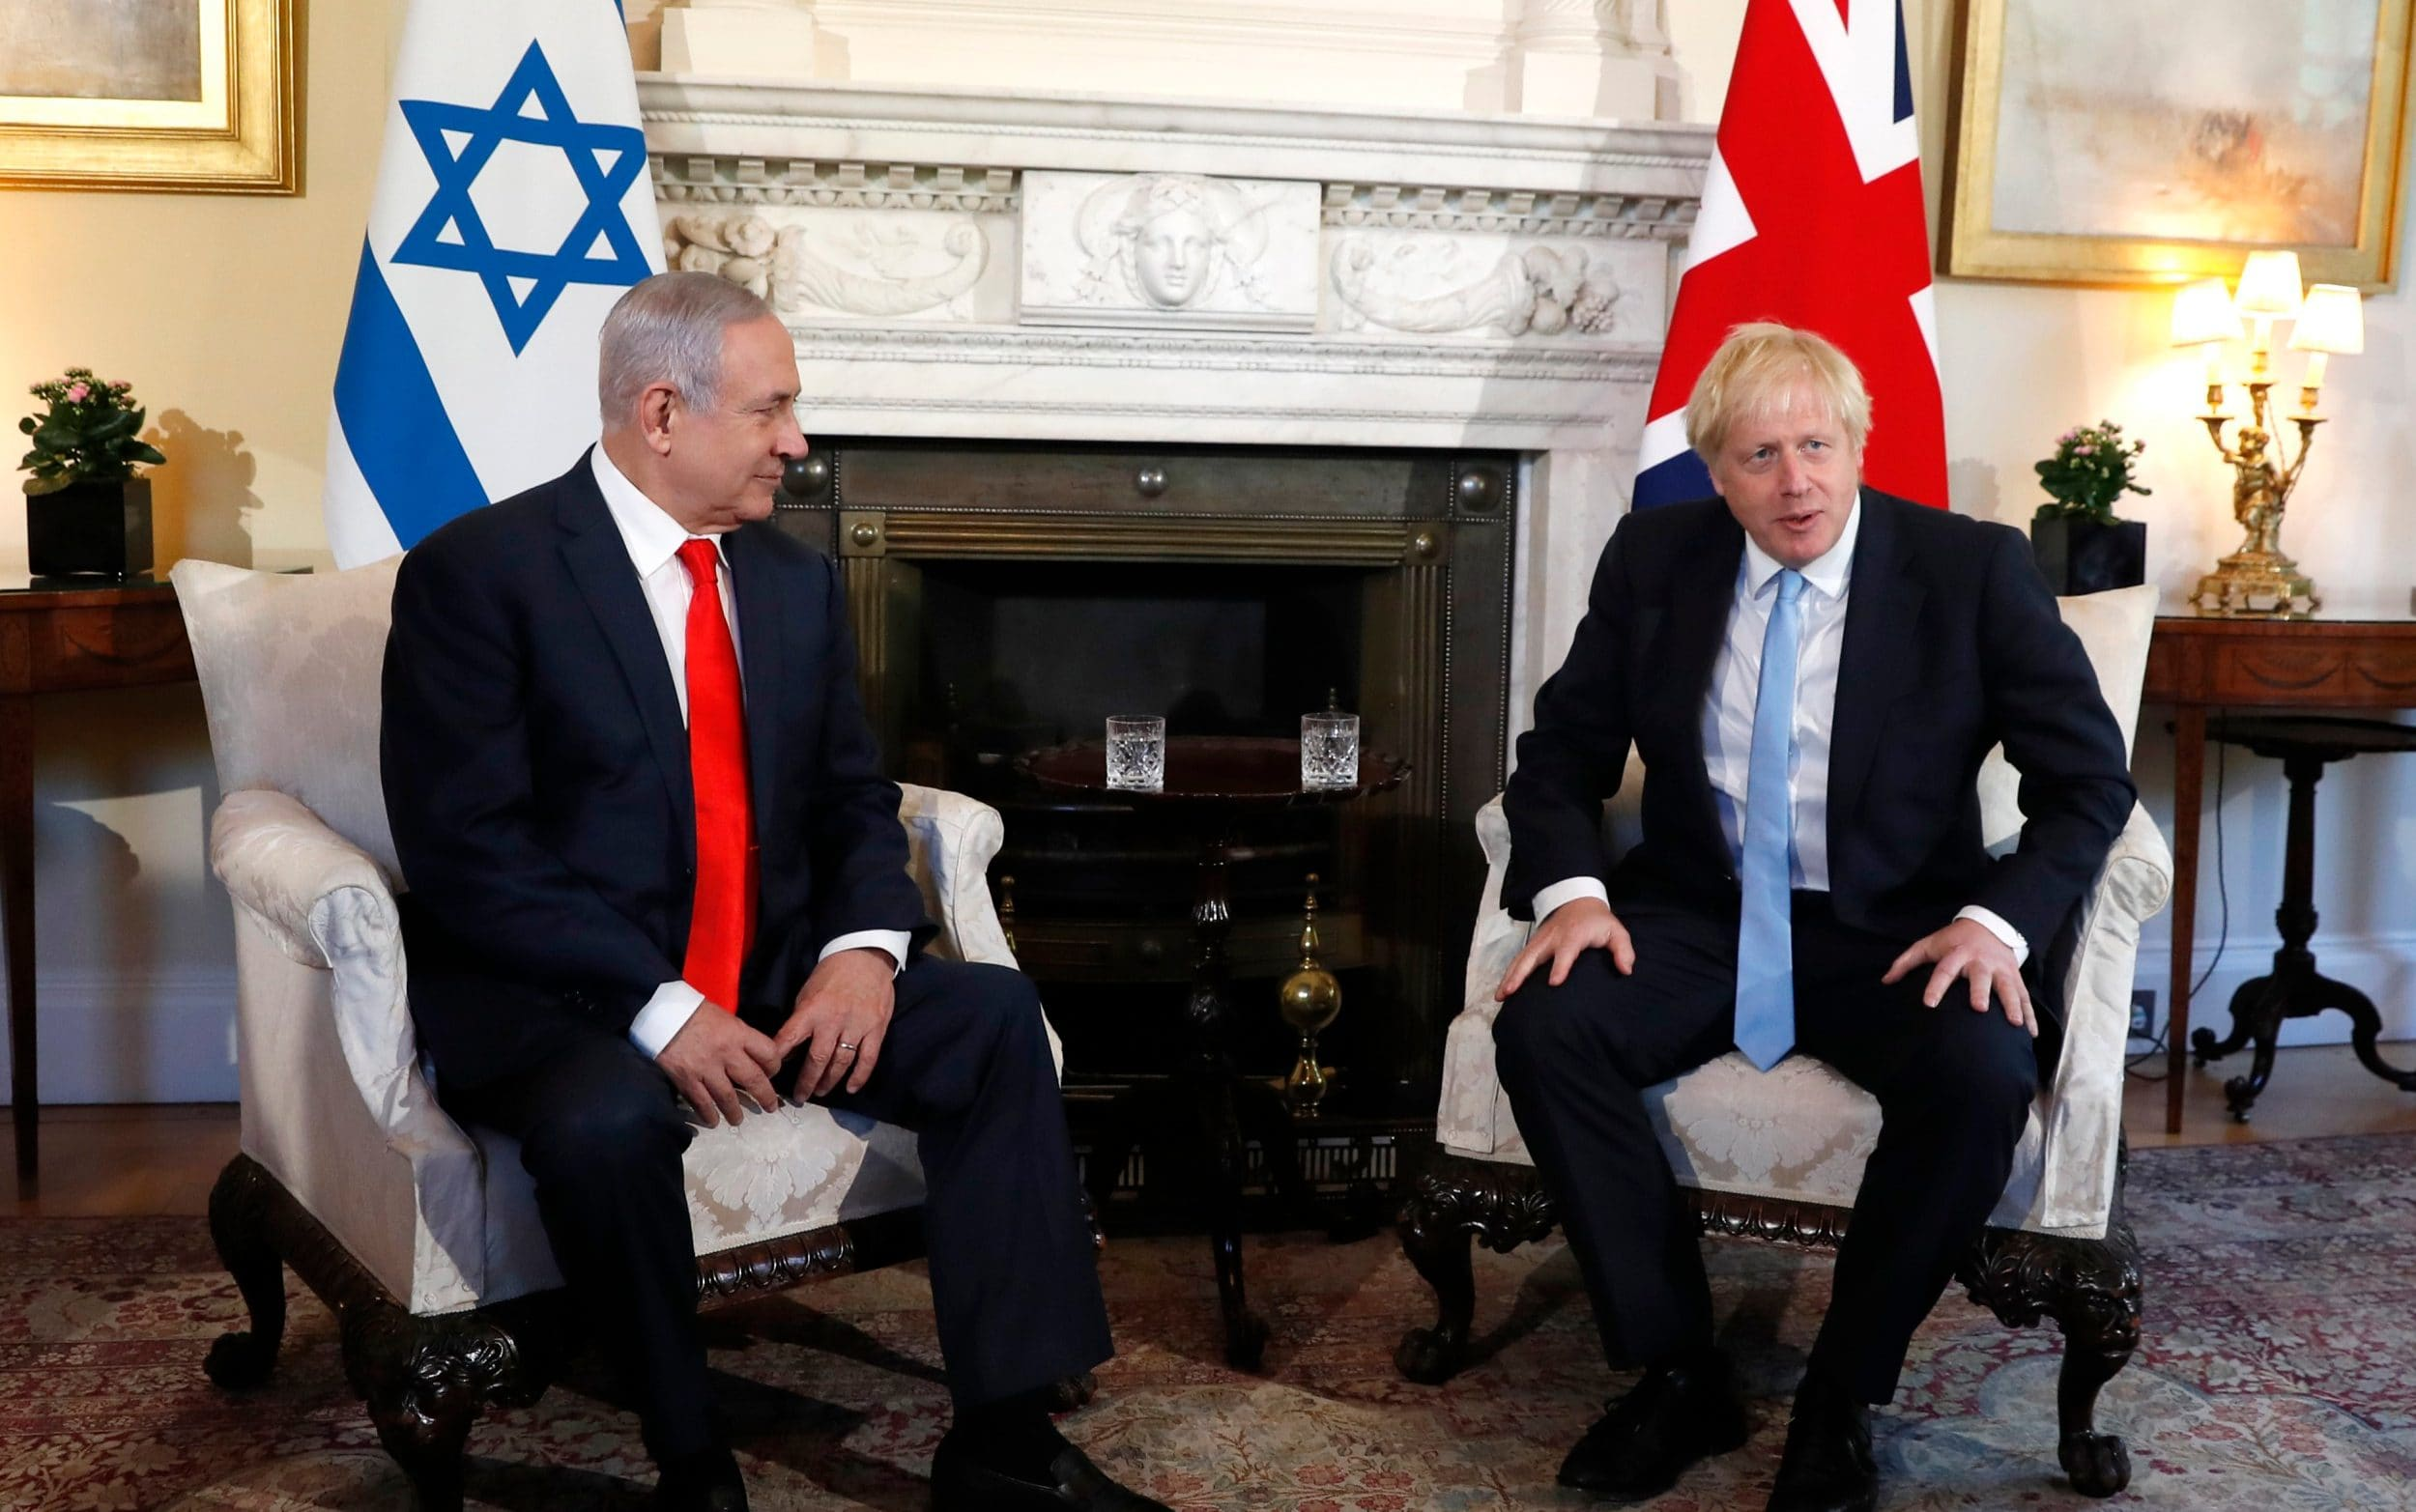 Britain rejects calls to take tougher stance on Iran as Benjamin Netanyahu meets Boris Johnson